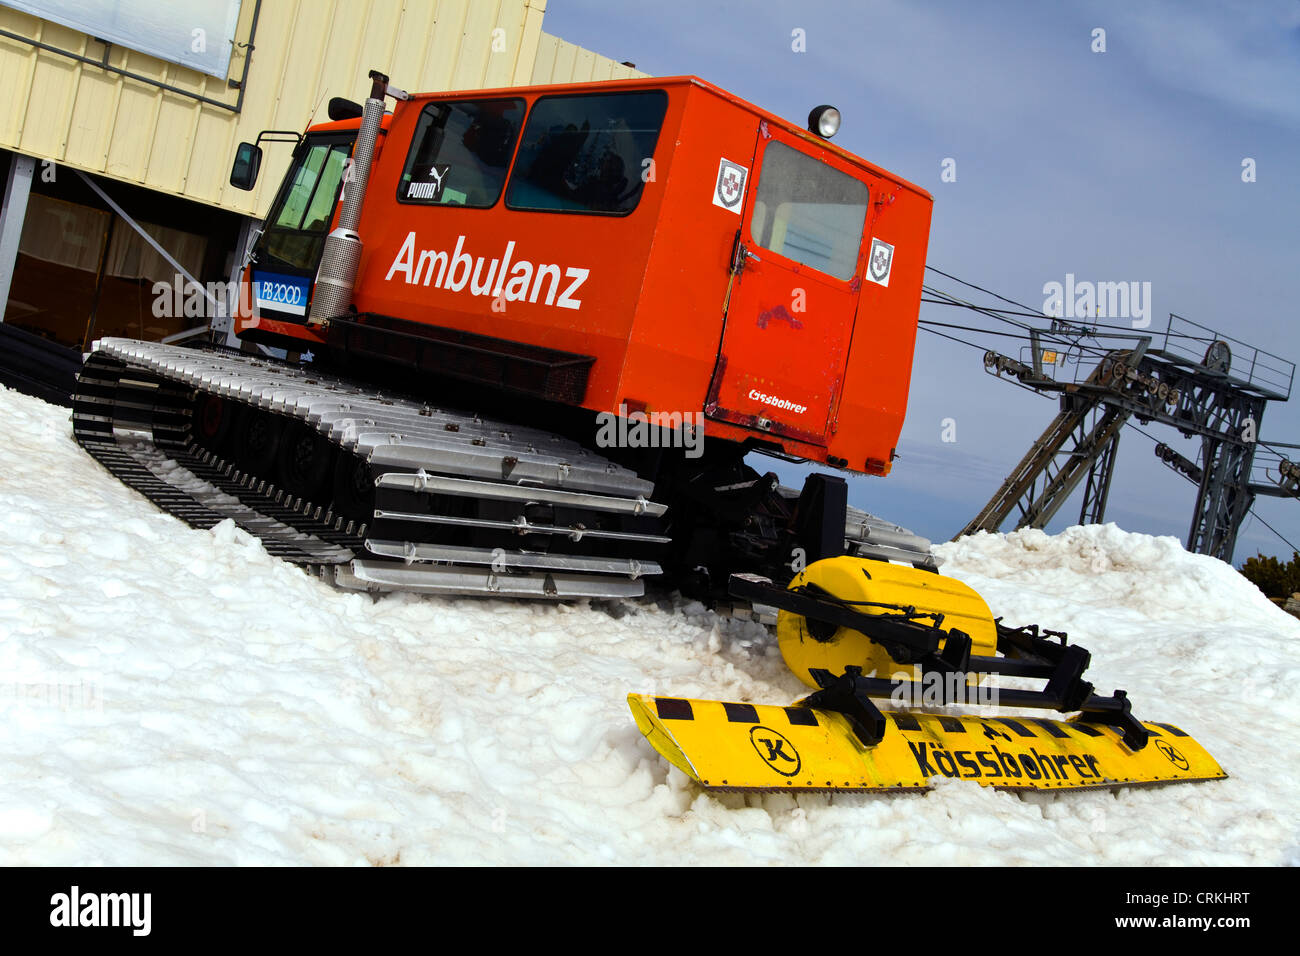 A Snow Cat ambulance in the mountains of the Pirin National Park - Stock Image